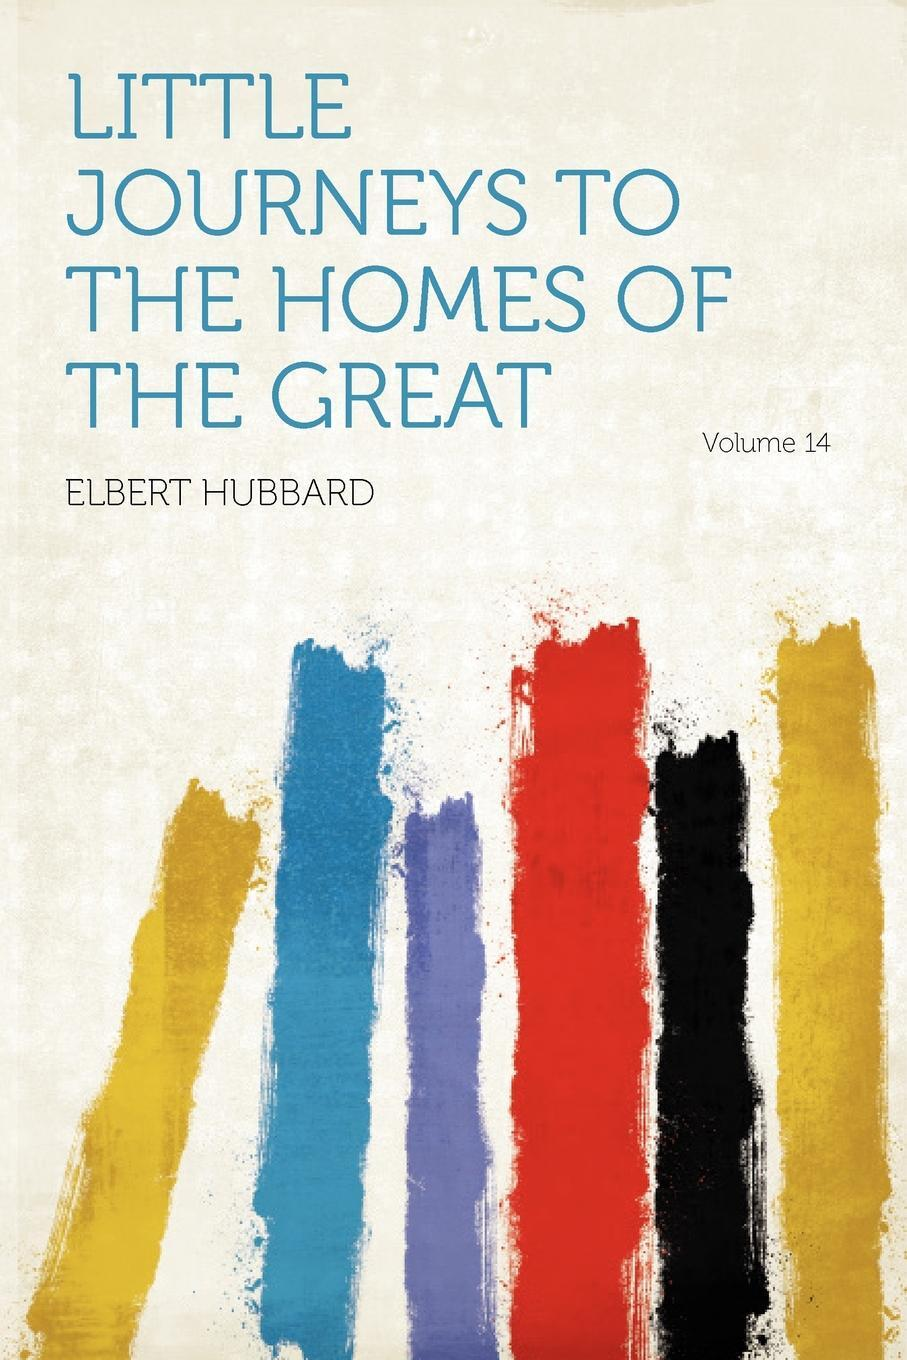 Little Journeys to the Homes of the Great Volume 14.